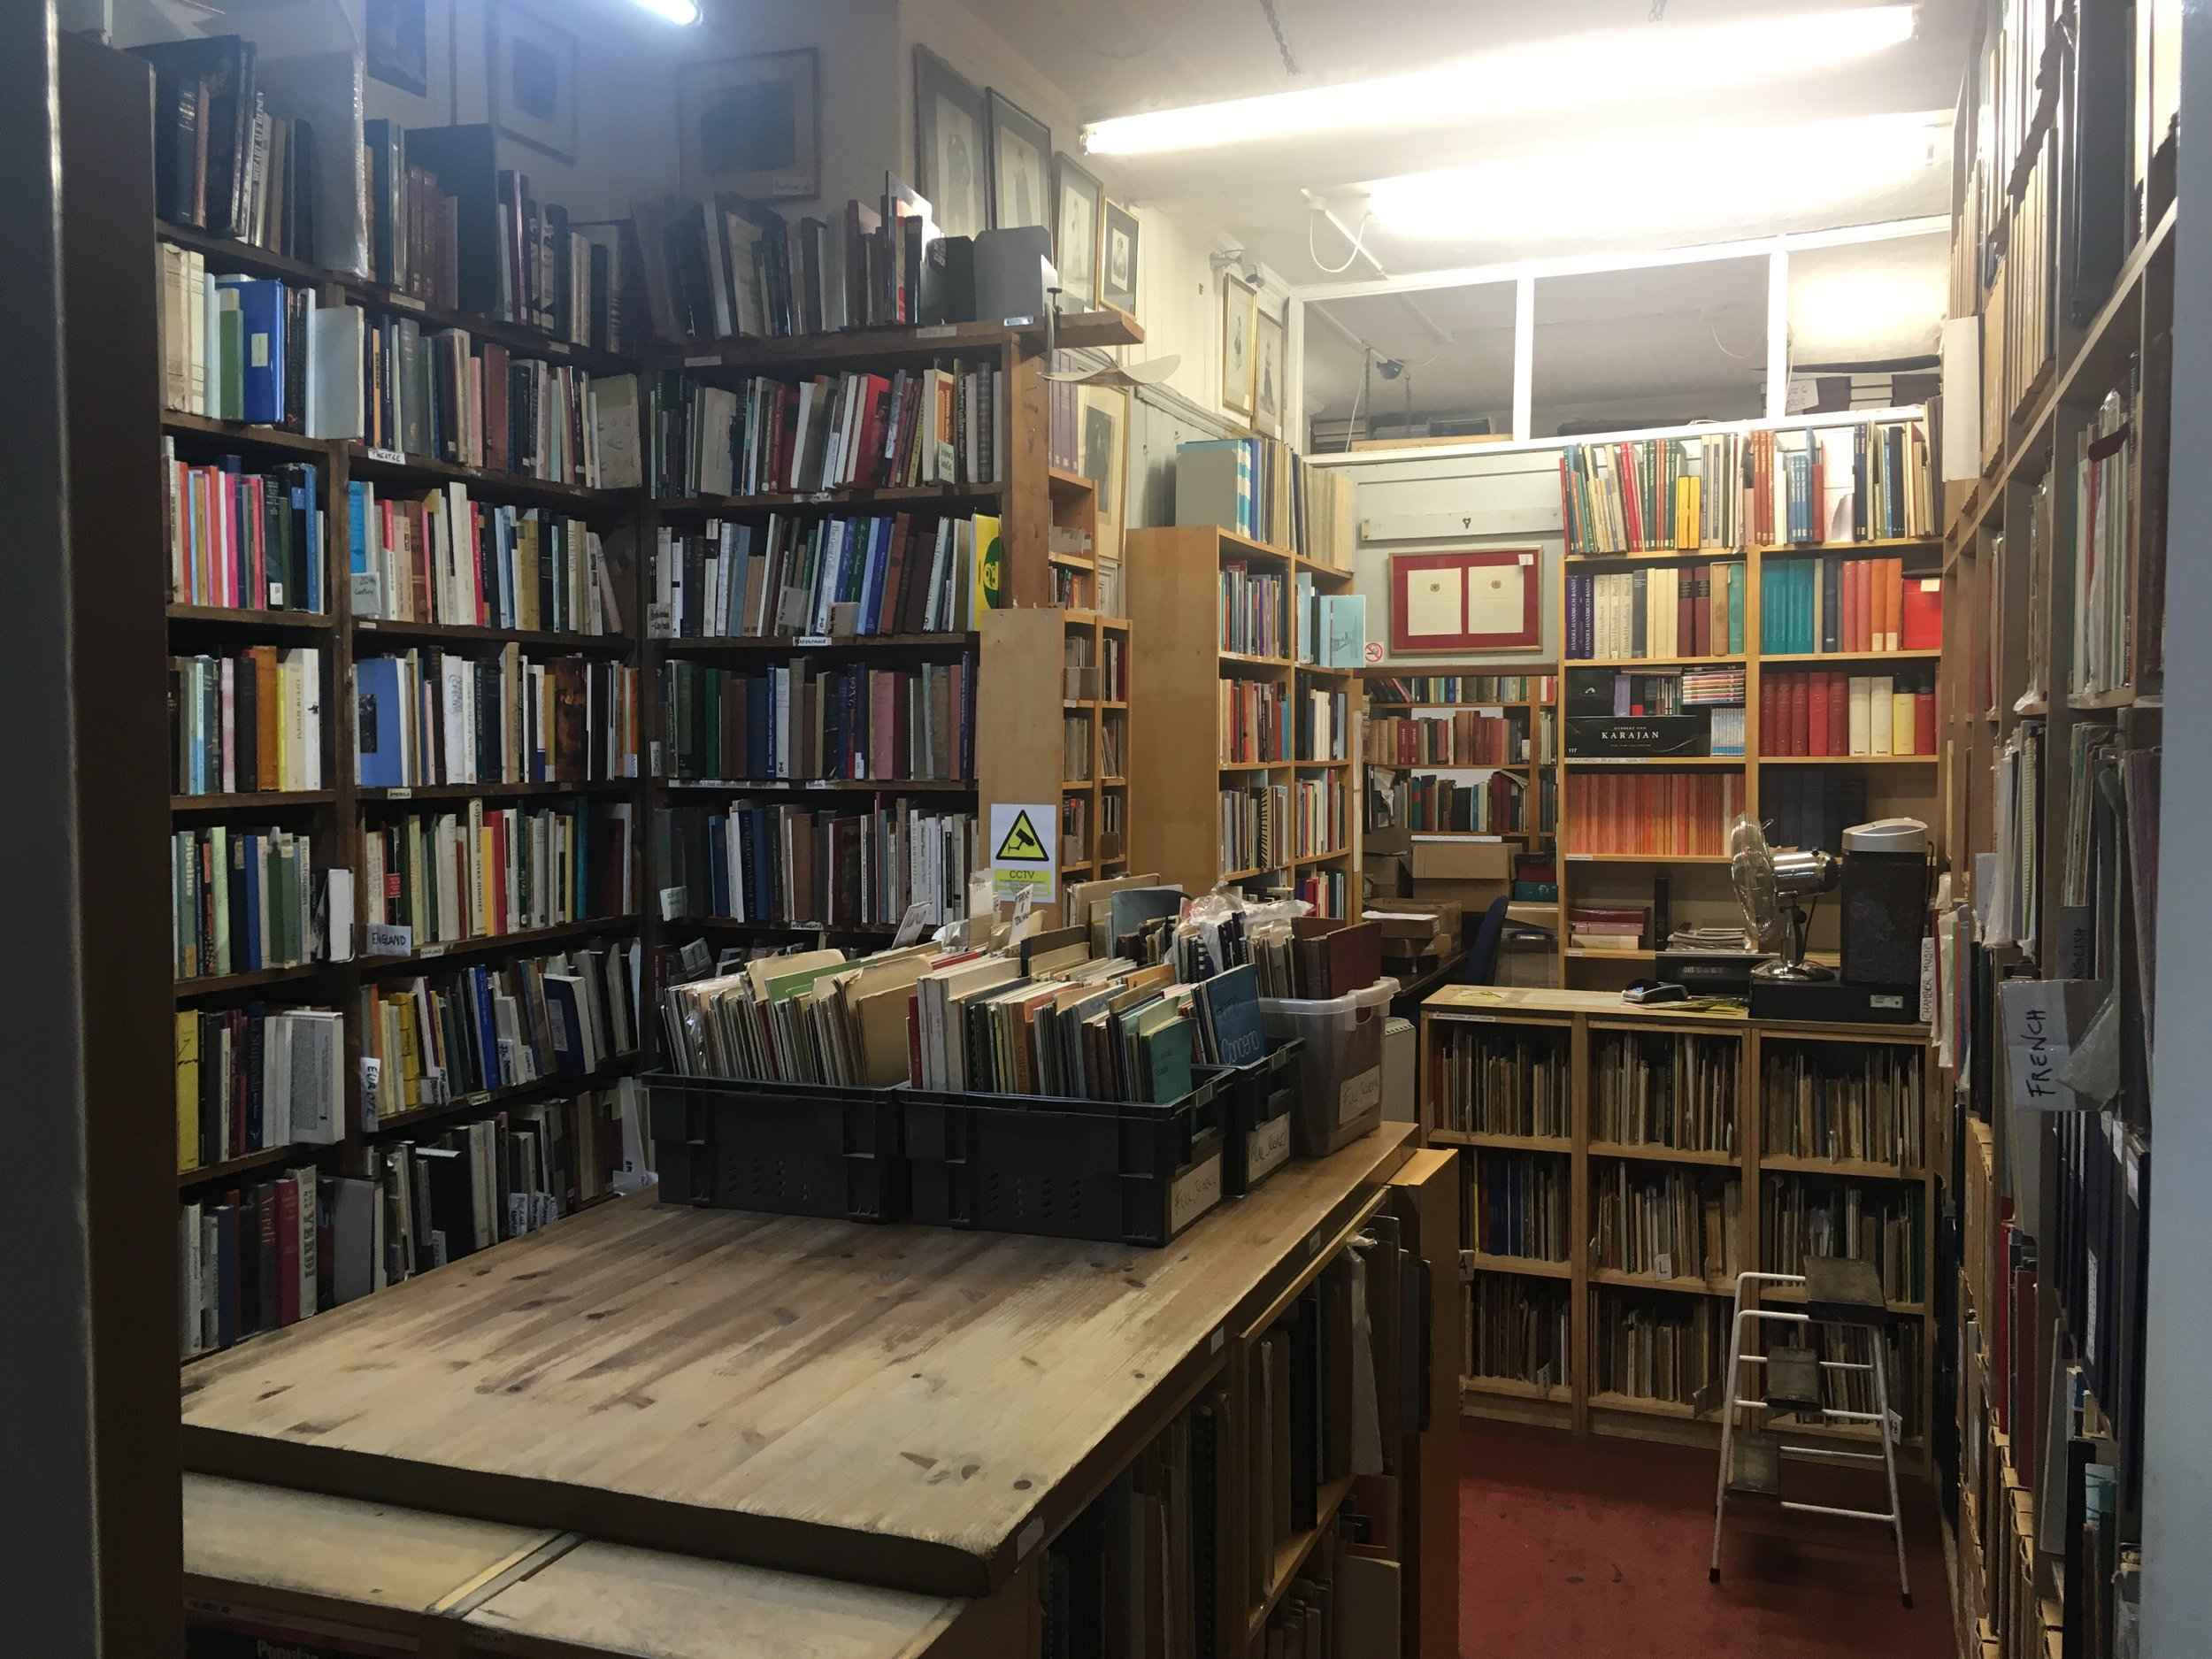 Travis & Emery Music Bookshop - Opening Hours:Monday to Saturday 10.15am-6.45pmSunday 11.30am-4pmCall: 020 7240 2129Email: cca@travis-and-emery.comMember of the ABA and the PBFA